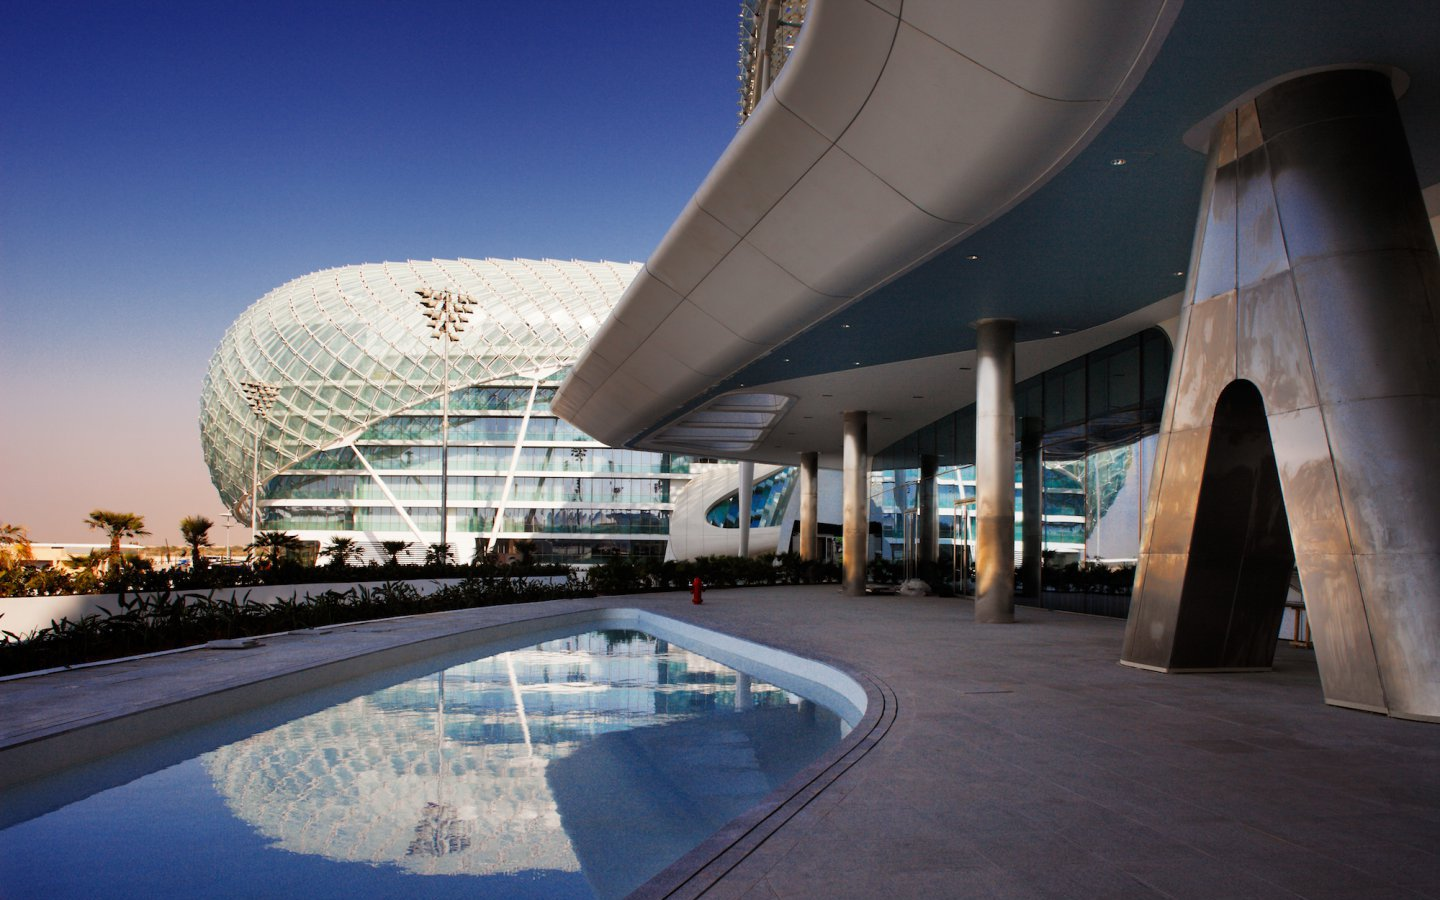 The Yas Hotel in Abu Dhabi was the first new hotel in the world to be built over an F1 race circuit